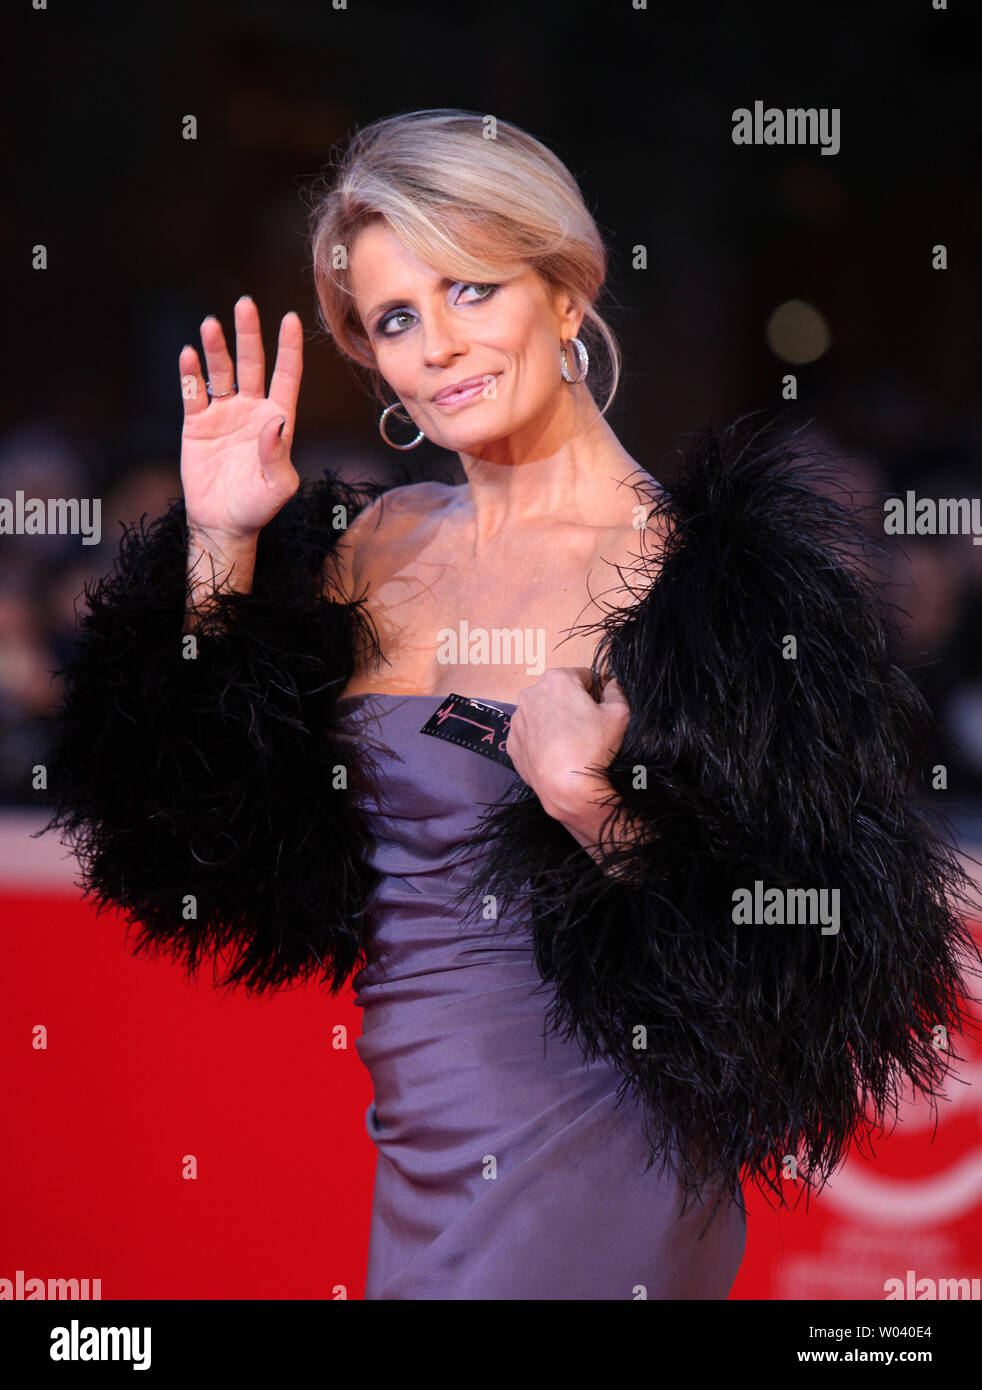 Isabelle Ferrari arrives on the red carpet before the screening of a digitally restored version of the 1960 classic film 'La Dolce Vita' during the 5th Rome International Film Festival in Rome on October 30, 2010.   UPI/David Silpa - Stock Image